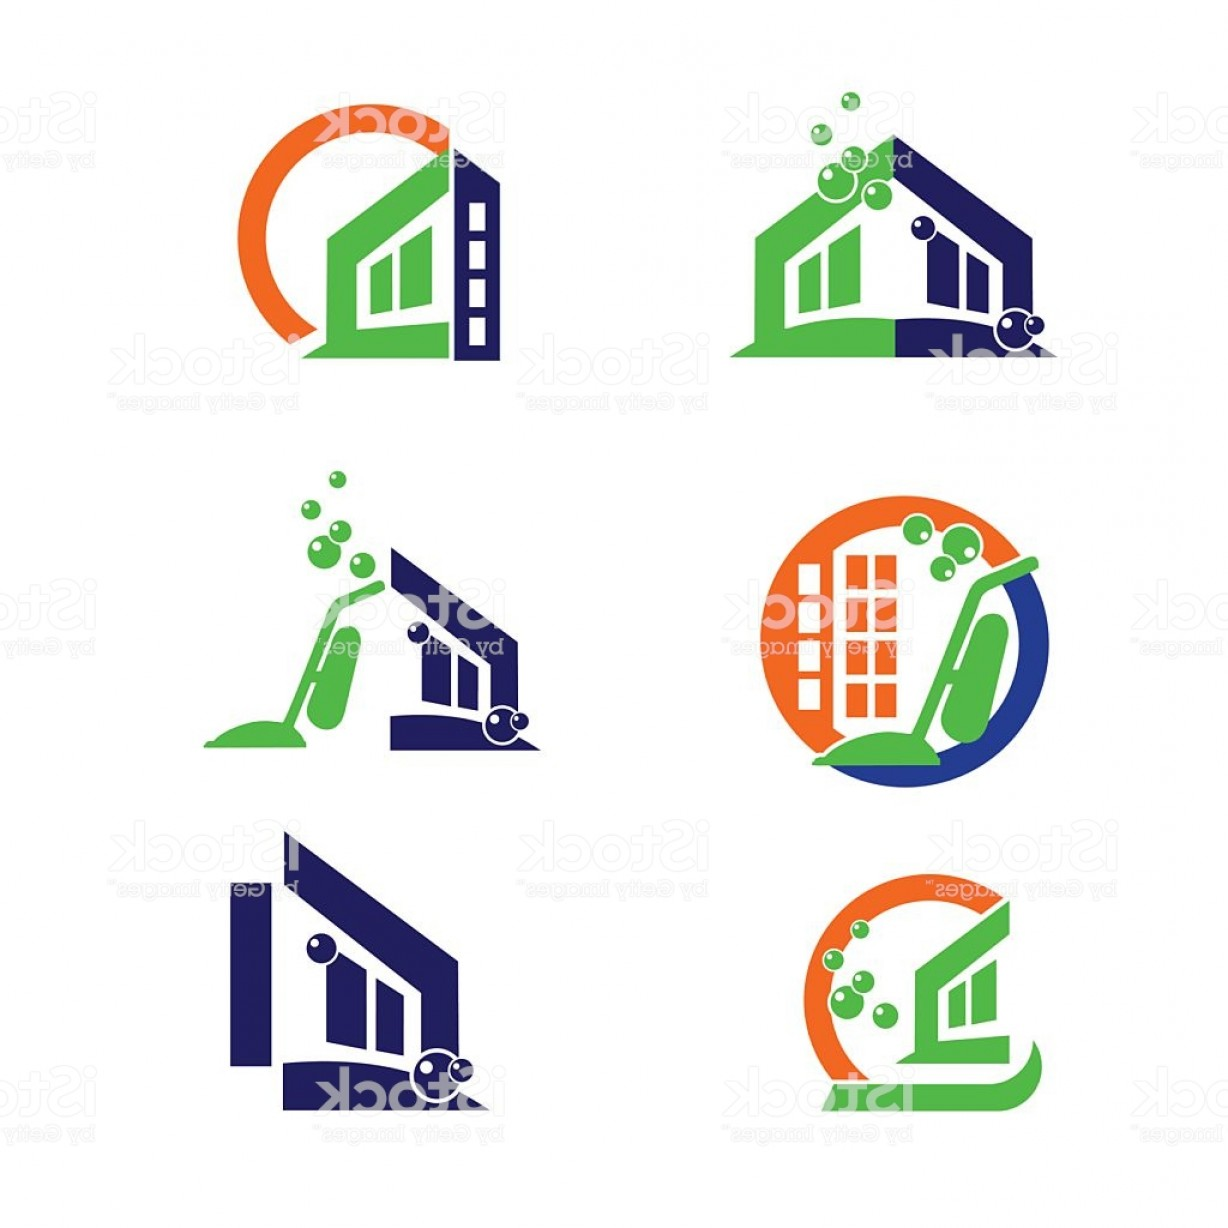 Cleaning Logo Vector Art: Commercial Home Cleaning Logo And Apps Icons Gm